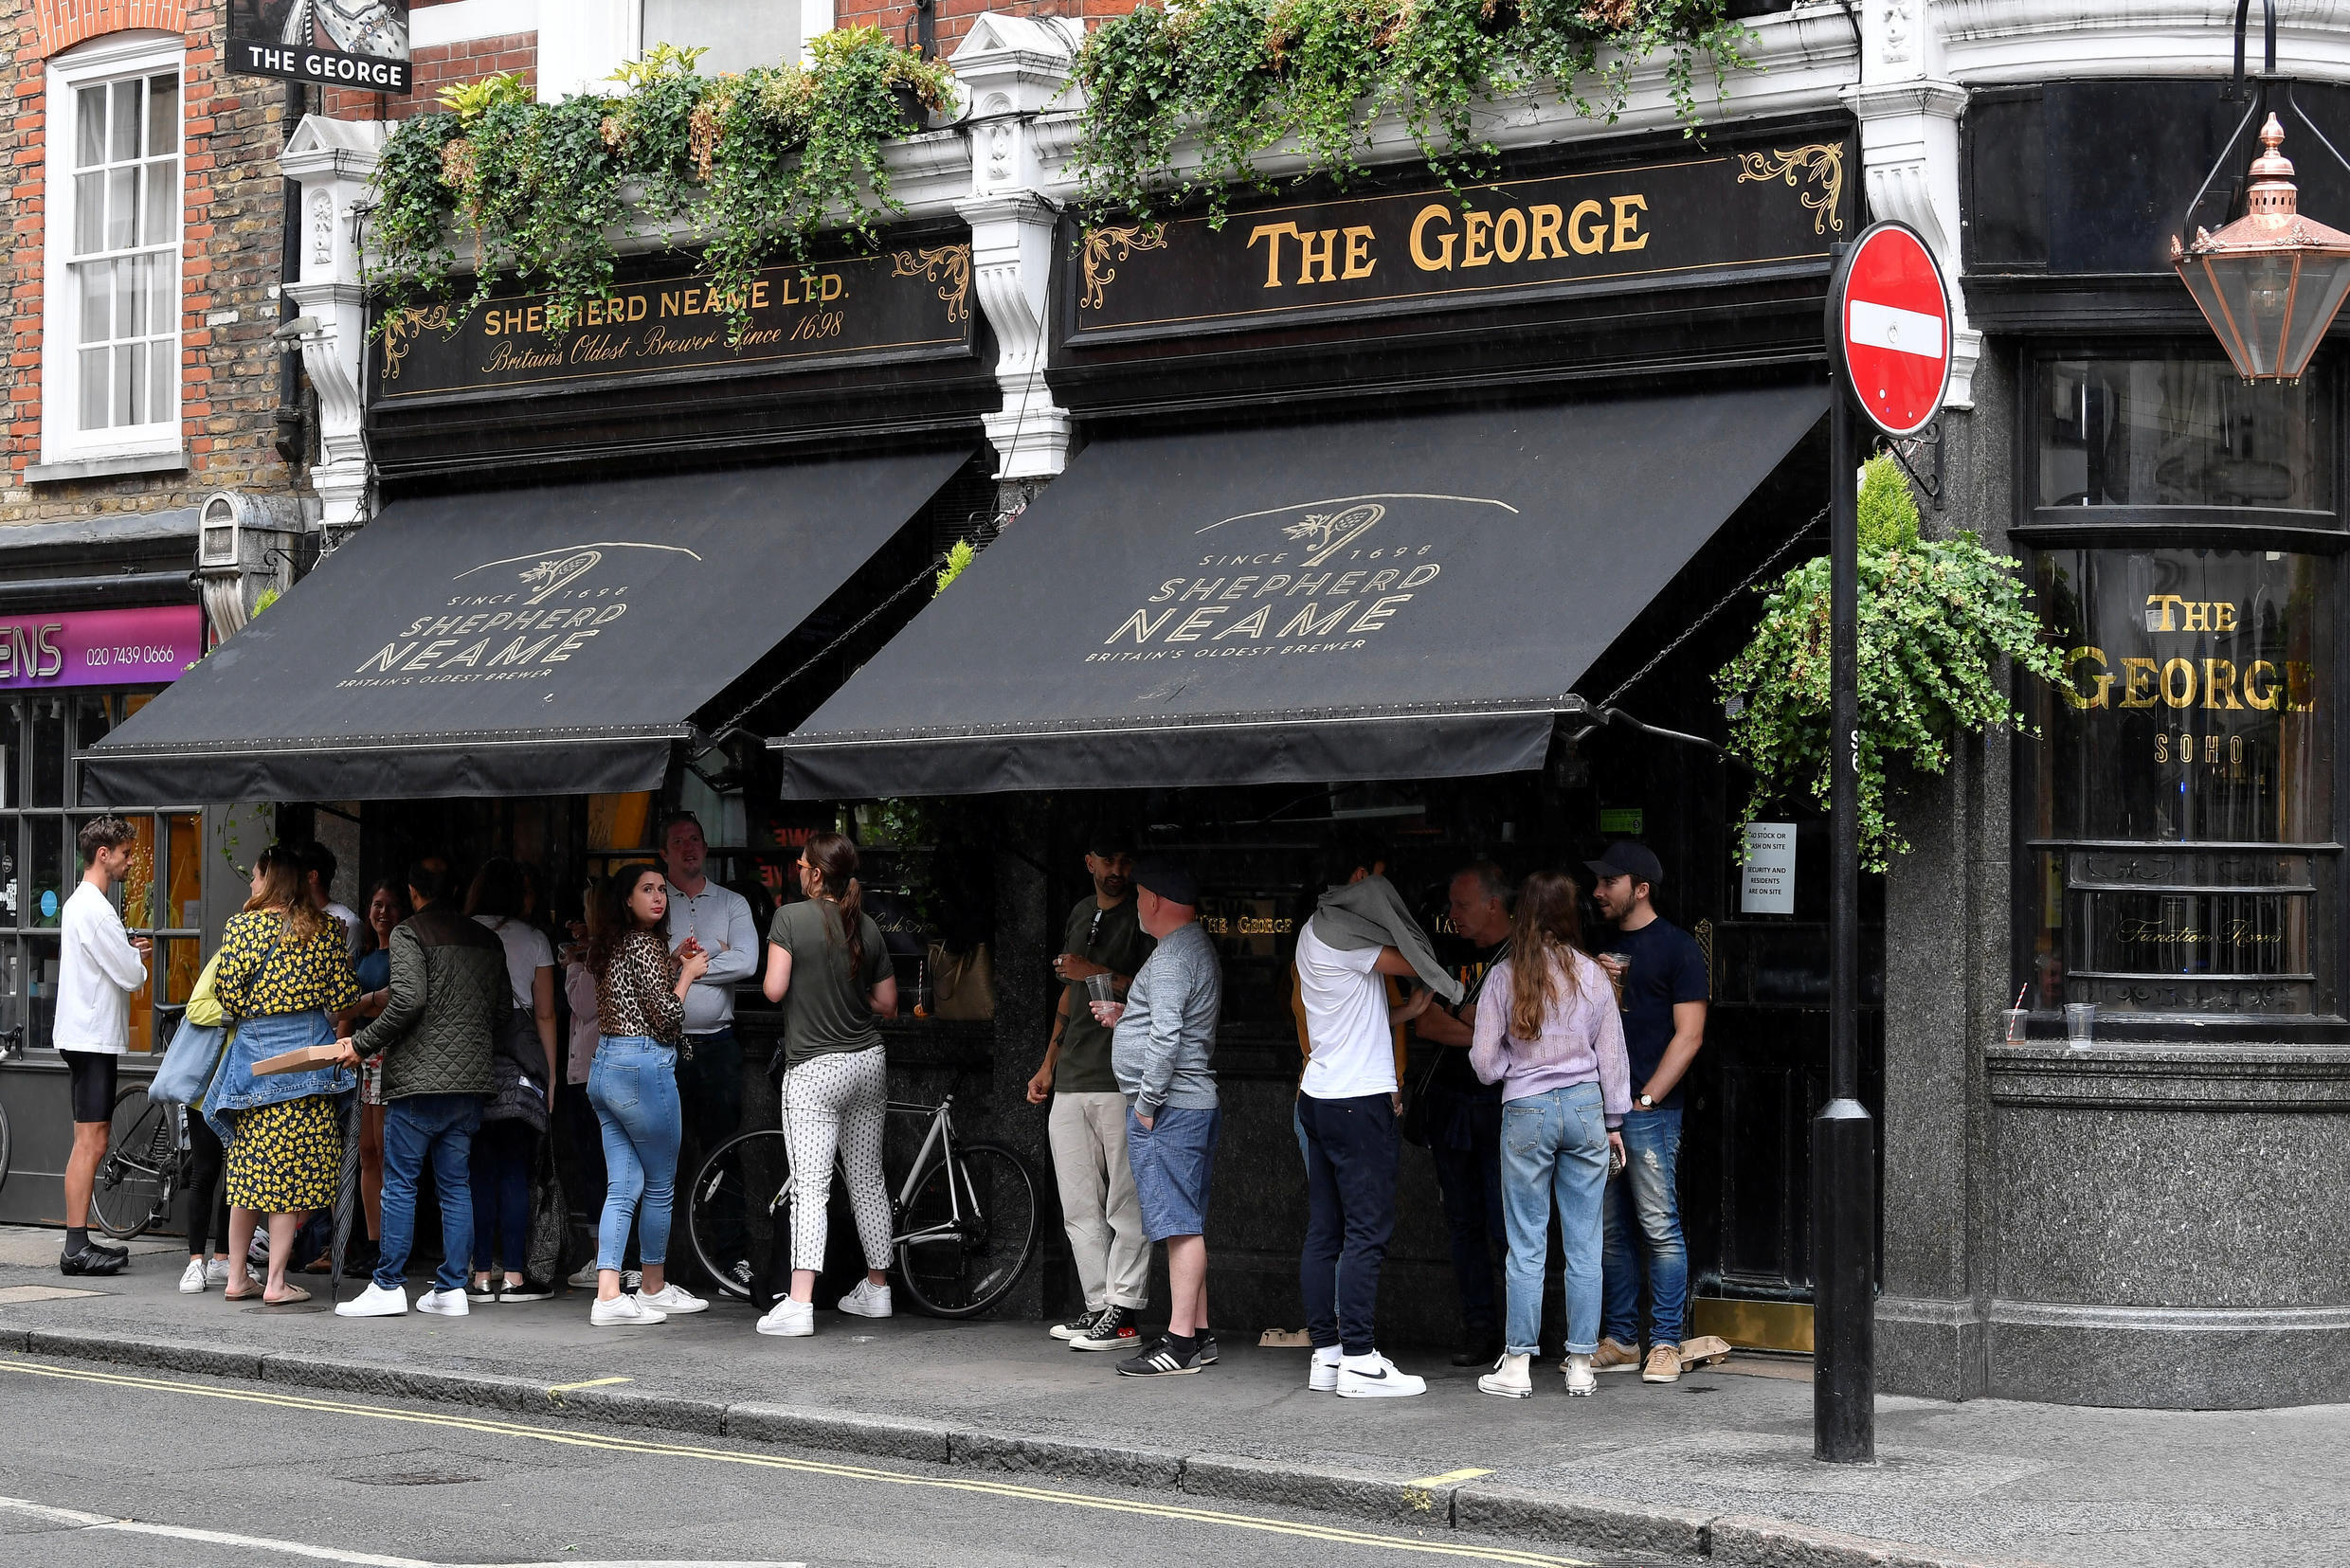 People gather outside a pub amid the spread of the coronavirus disease (COVID-19) in London, UK, June 28, 2020.